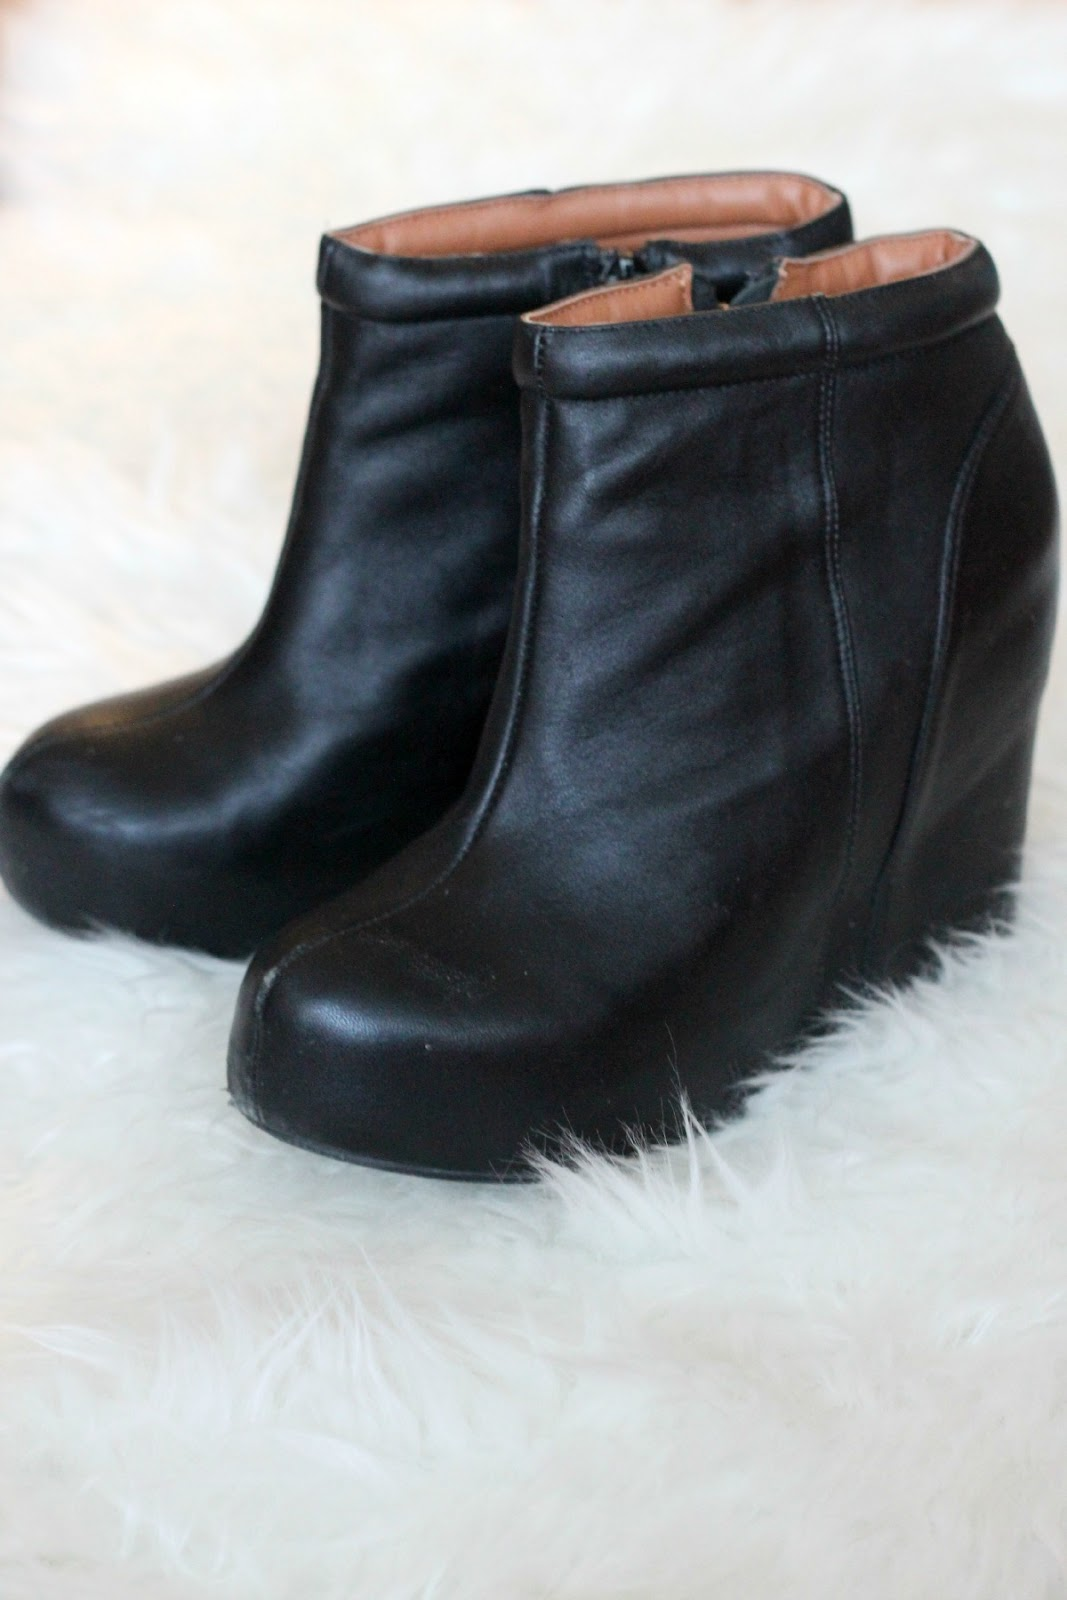 shop monochroma chic aldo ankle wedge boots